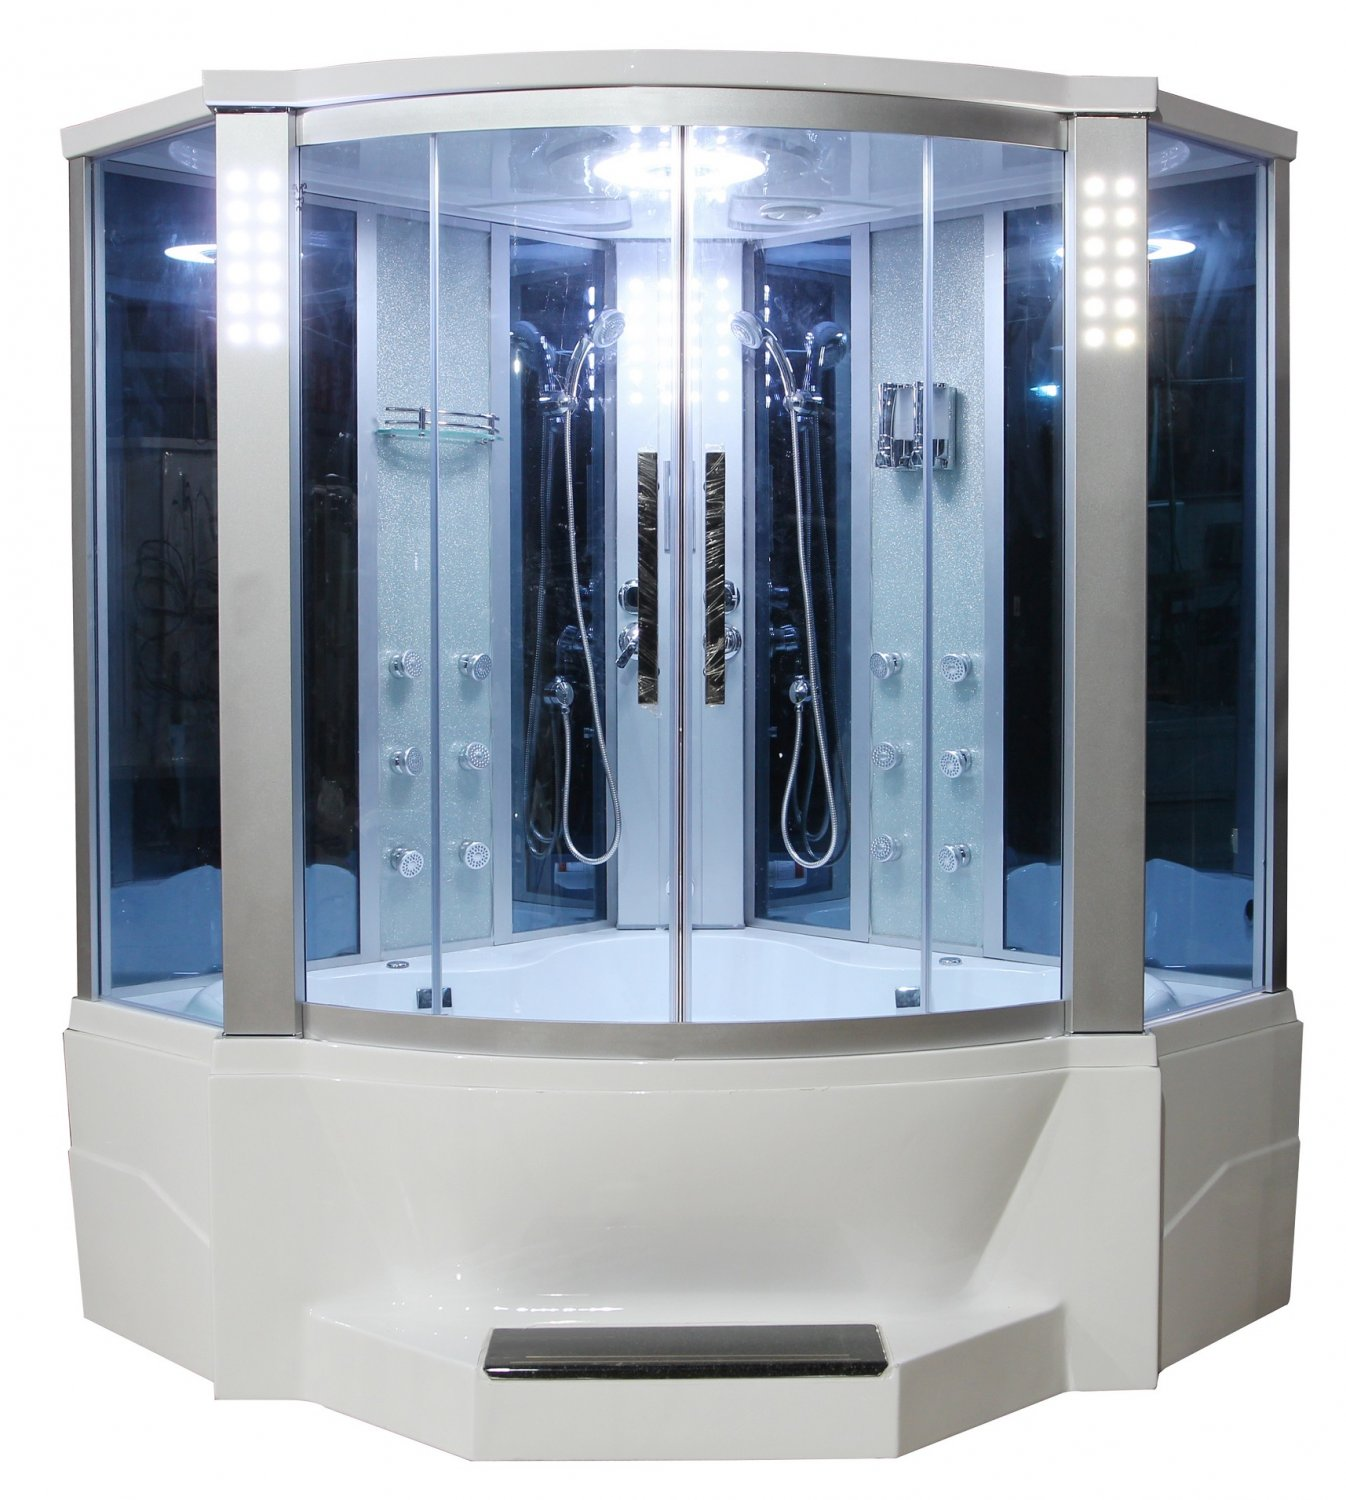 66 Eagle Bath Ws 701 Steam Shower Sauna Encloures W